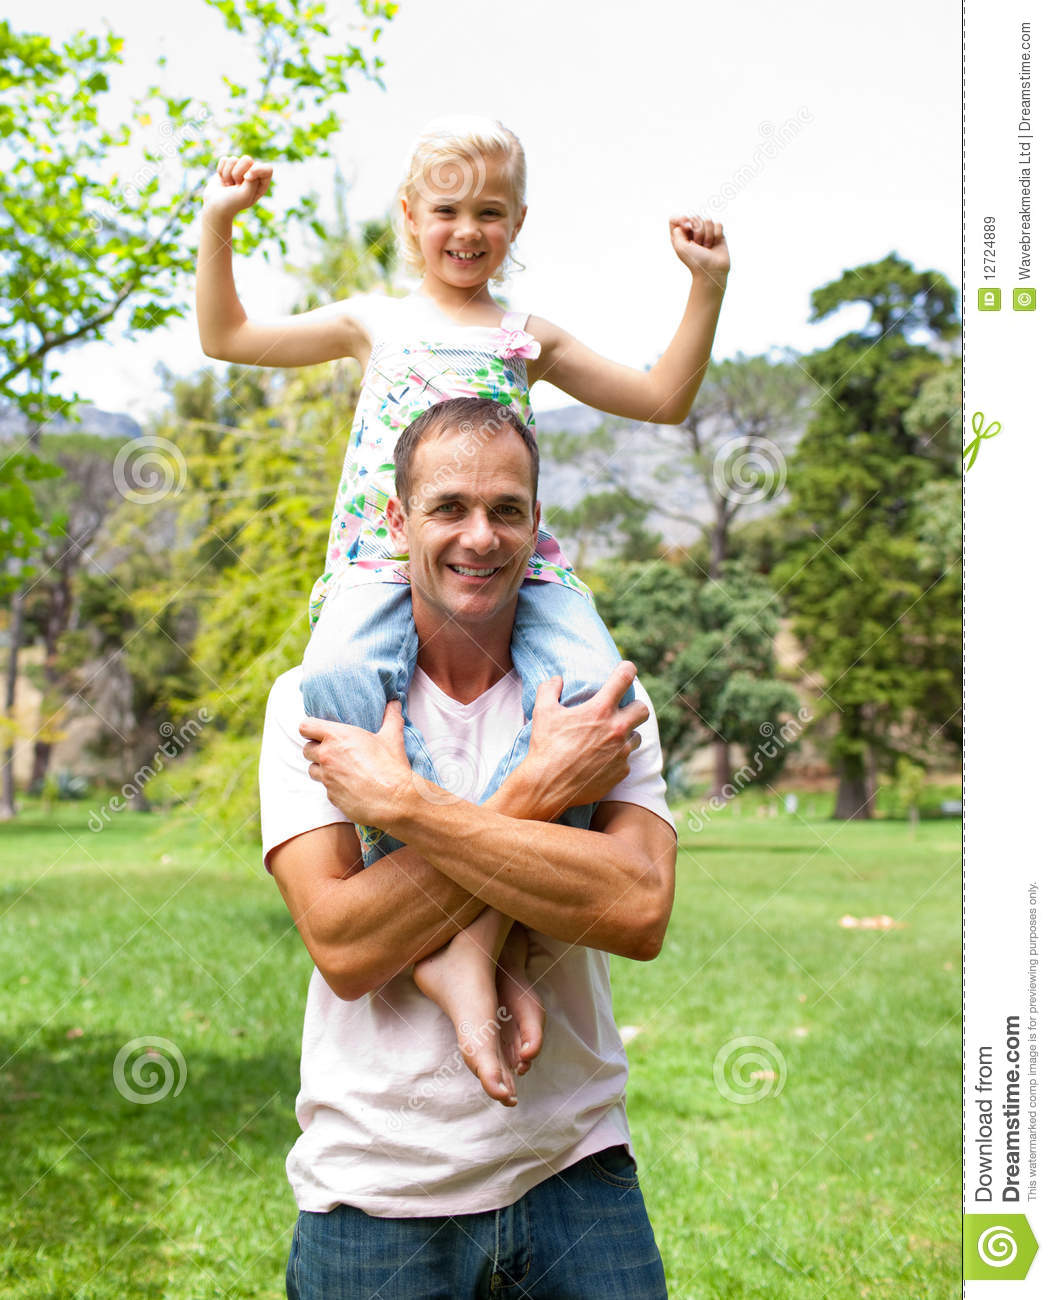 Jolly Father Giving His Daughter Piggy-back Ride Stock